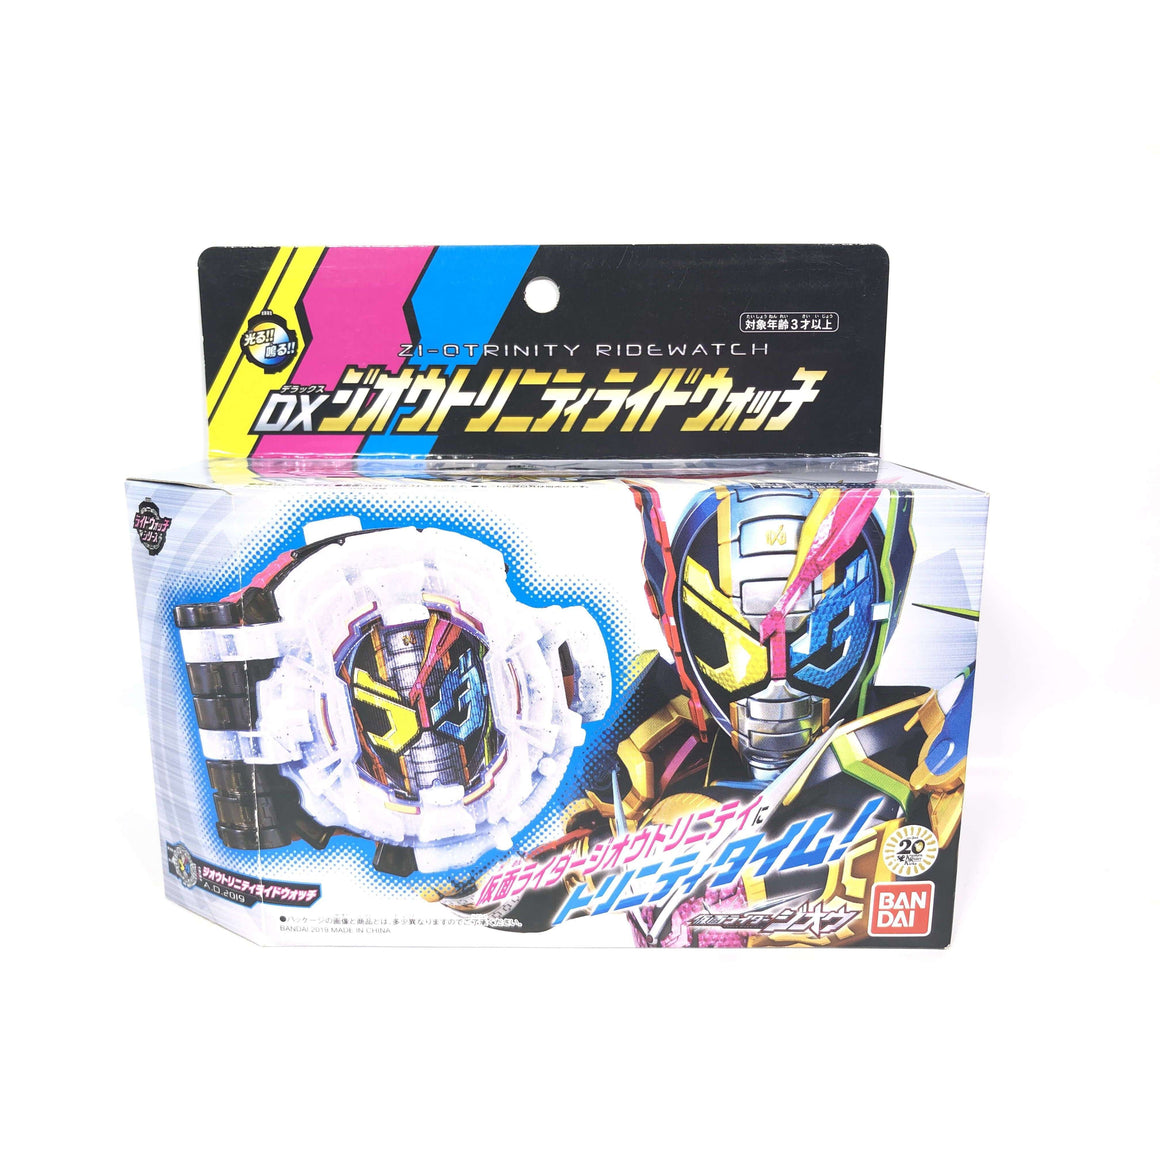 CSTOYS INTERNATIONAL:3000000419861[BOXED]Kamen Rider Zi-O: DX Zi-O Trinity Ride Watch